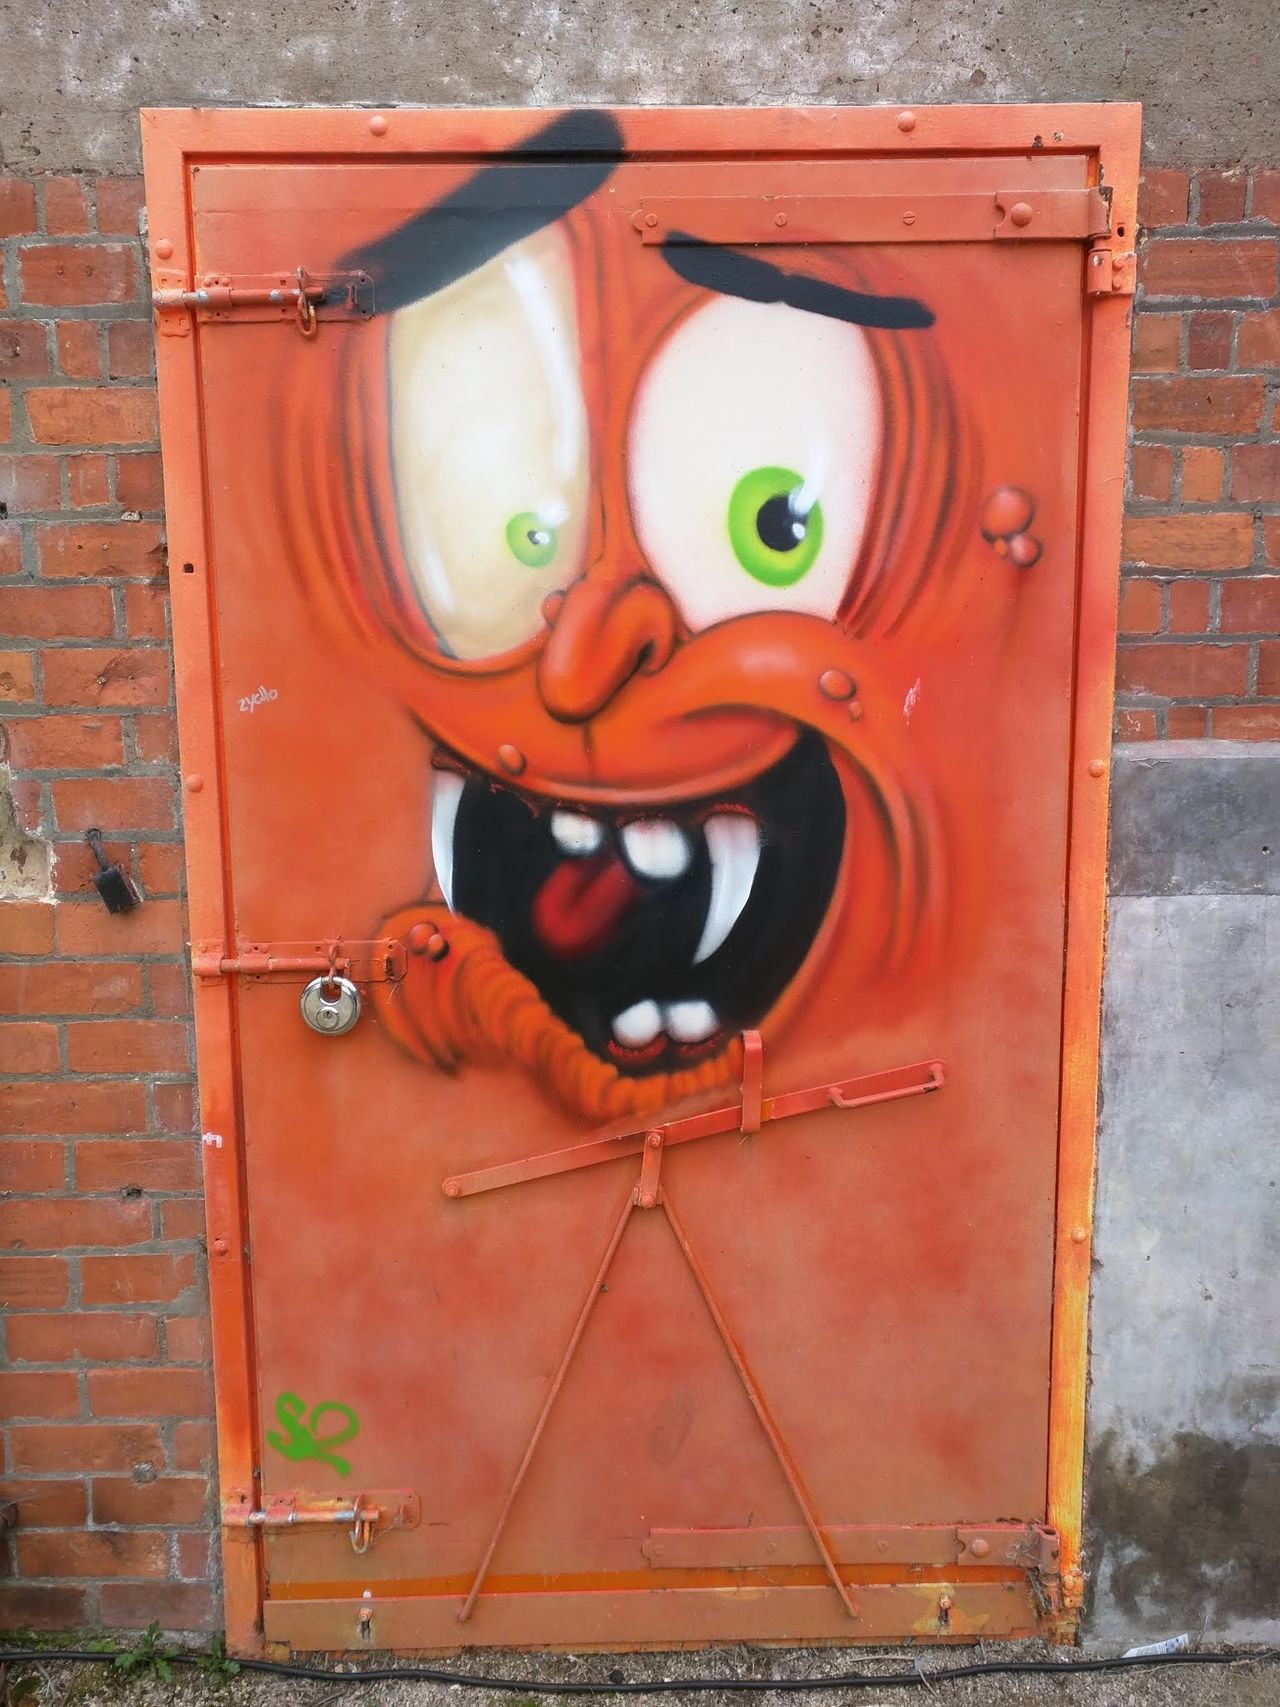 Creativity Art Human Representation Close-up Art And Craft Anthropomorphic Face Multi Colored Outdoors Day Full Frame Red Symbol Vibrant Color Representation Graffiti Weathered Door City Of Culture 2017 Hull Hull 2017 Hull City Of Culture 2017 No People Creativity Orange Red